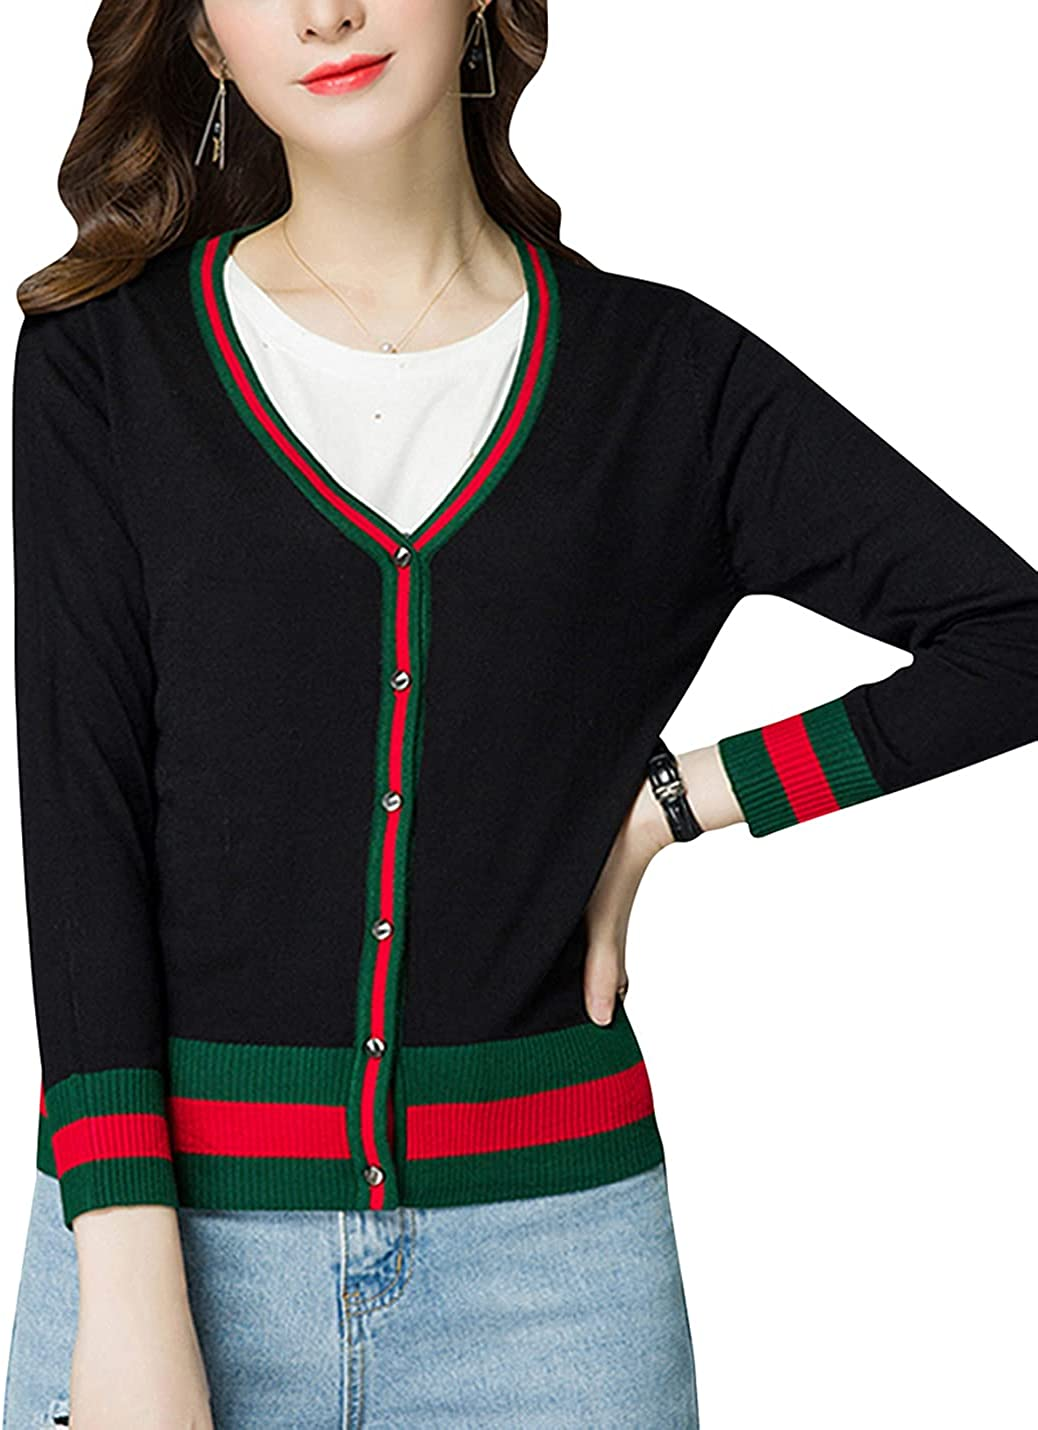 ZGZZ7 Women's Casual Sweater Cardigans V Neck Buttons Short Knitted Sweater Coats Tops